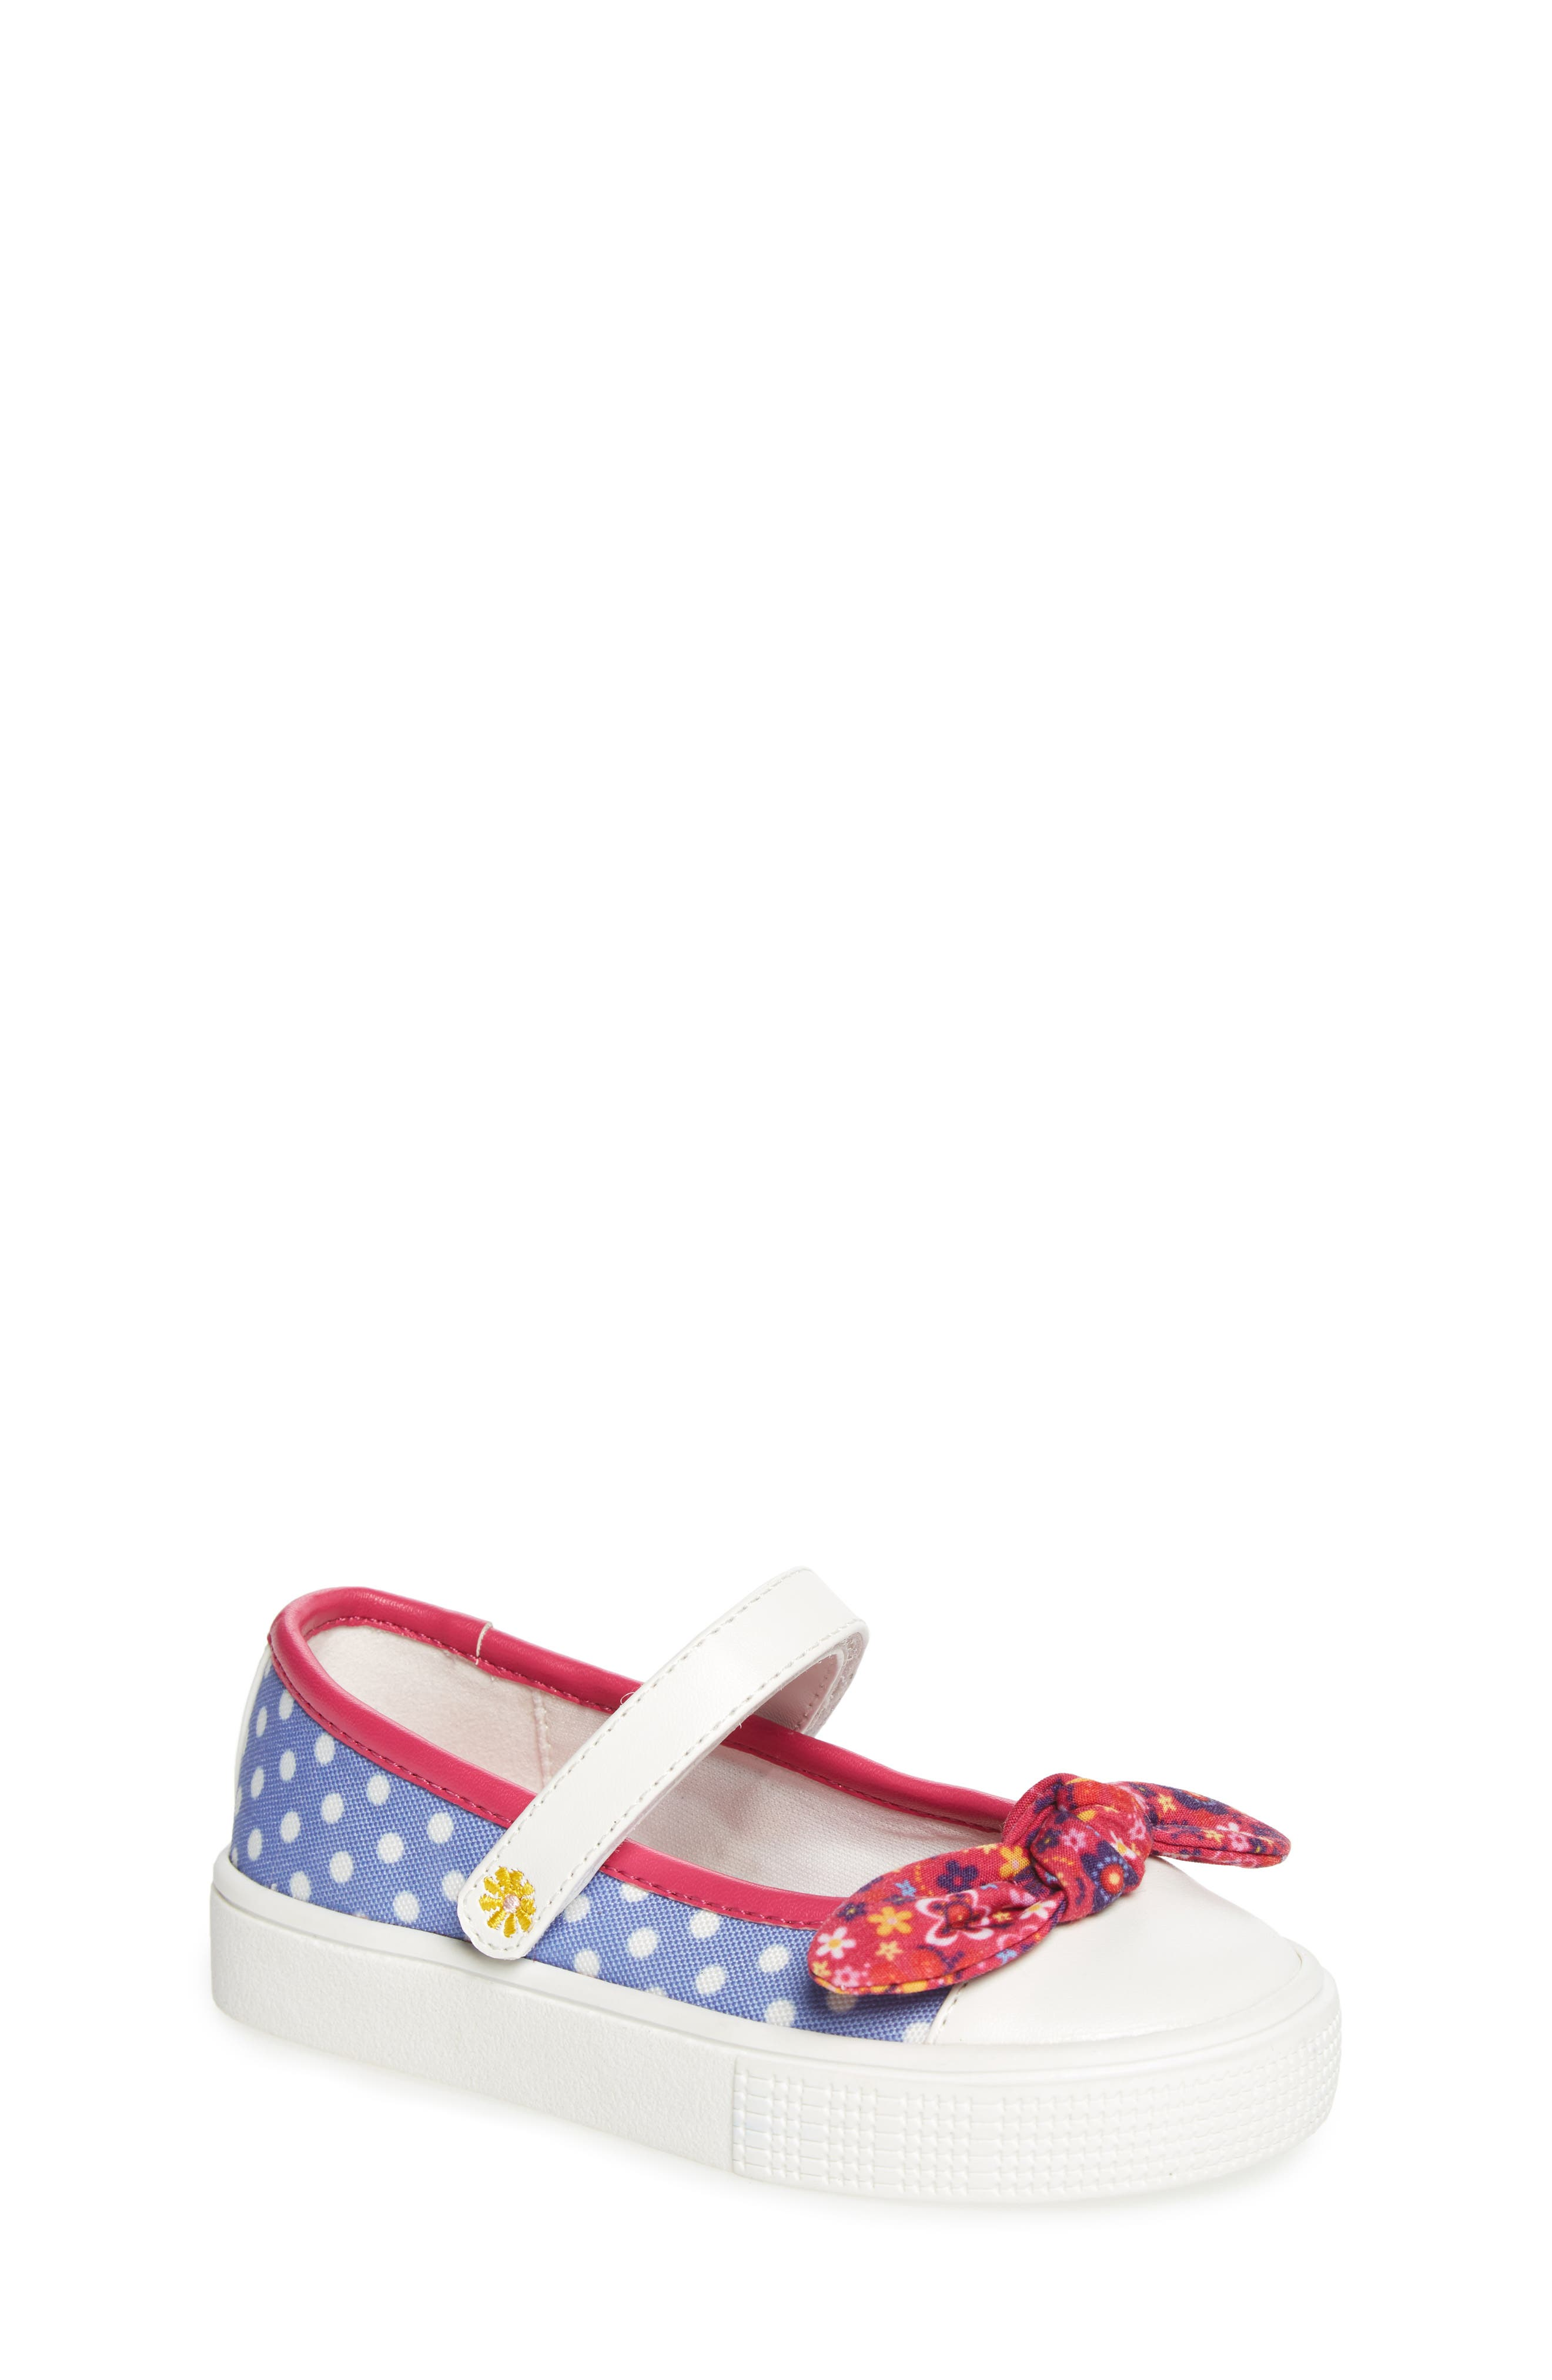 Kendall Mary Jane Sneaker,                         Main,                         color, Purple